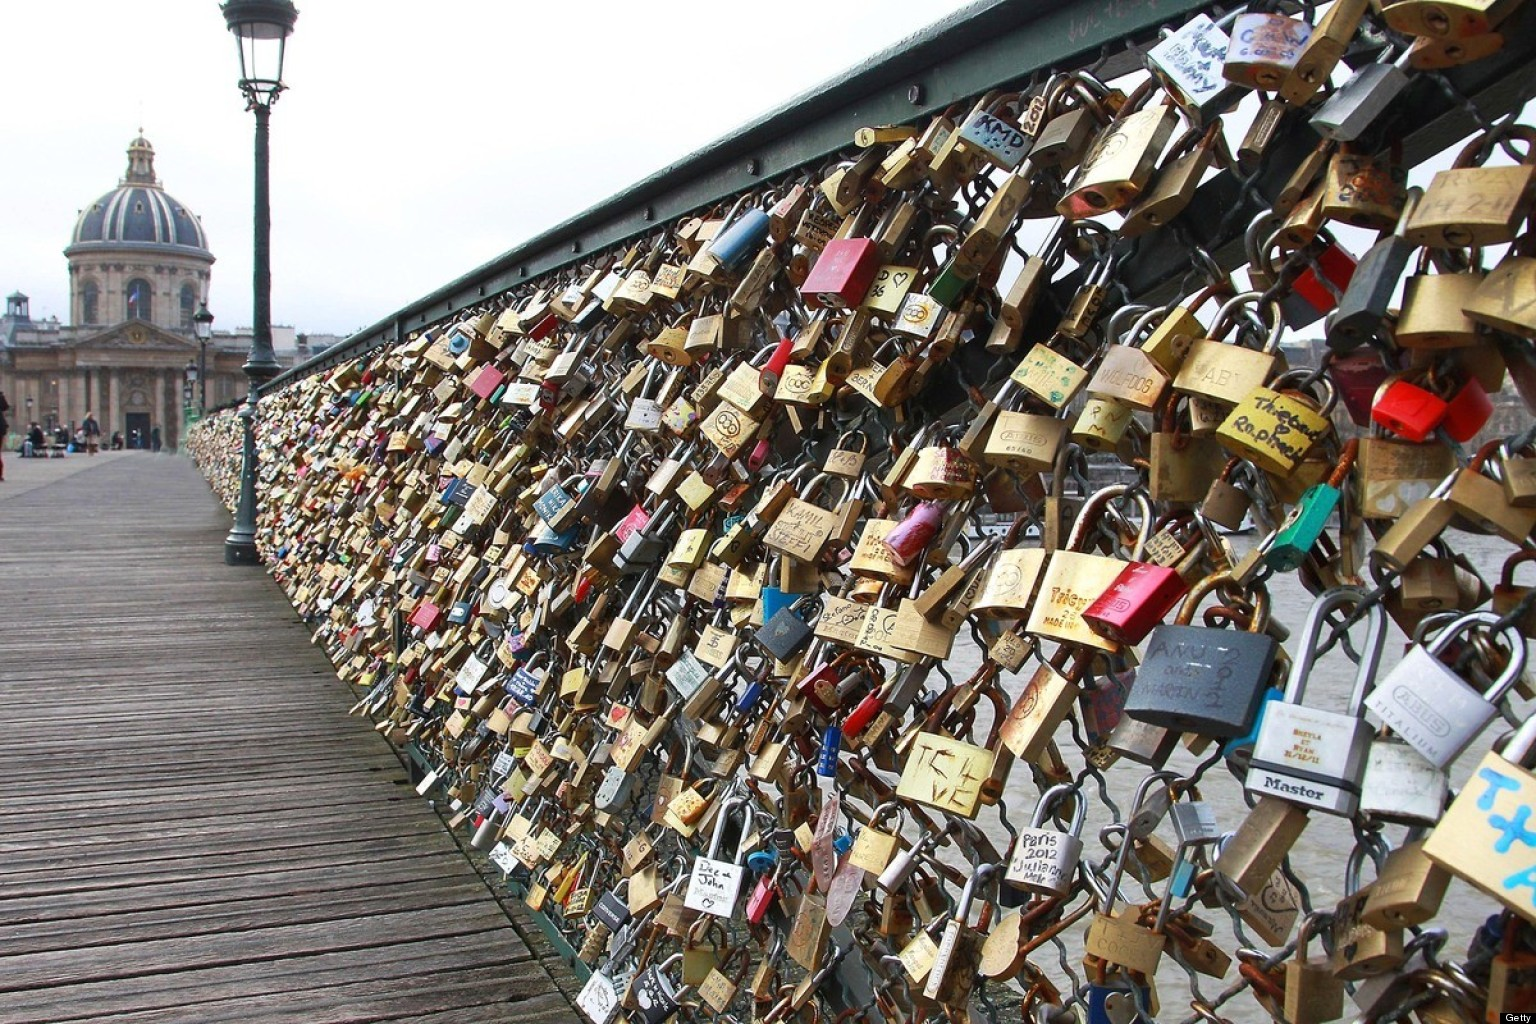 The tradition of attaching a padlock on the fence and tossing the key into the Seine River